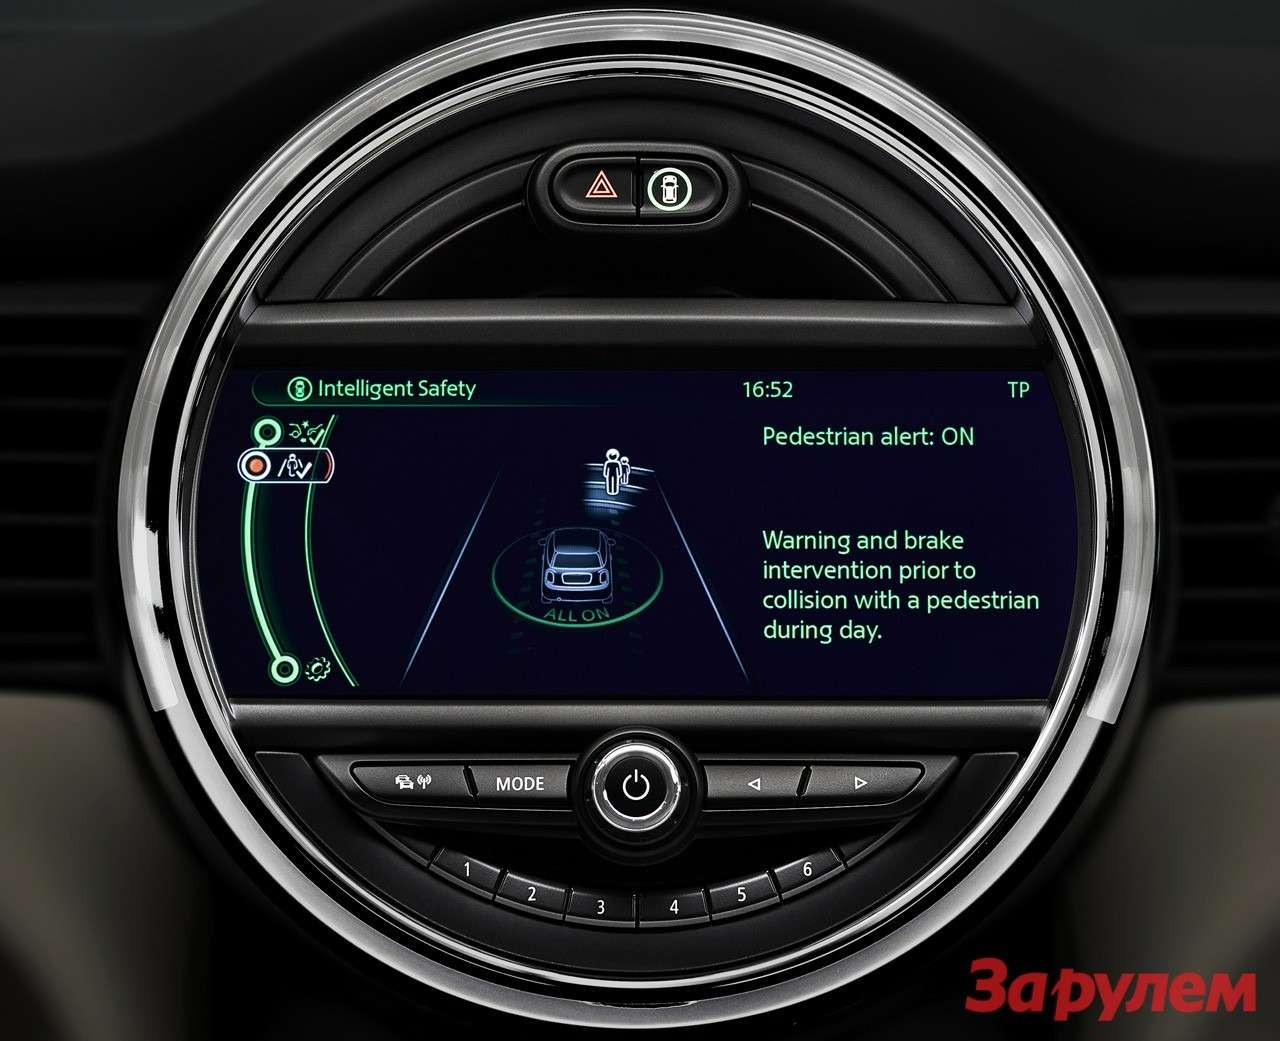 001 mini driver assist technology 1